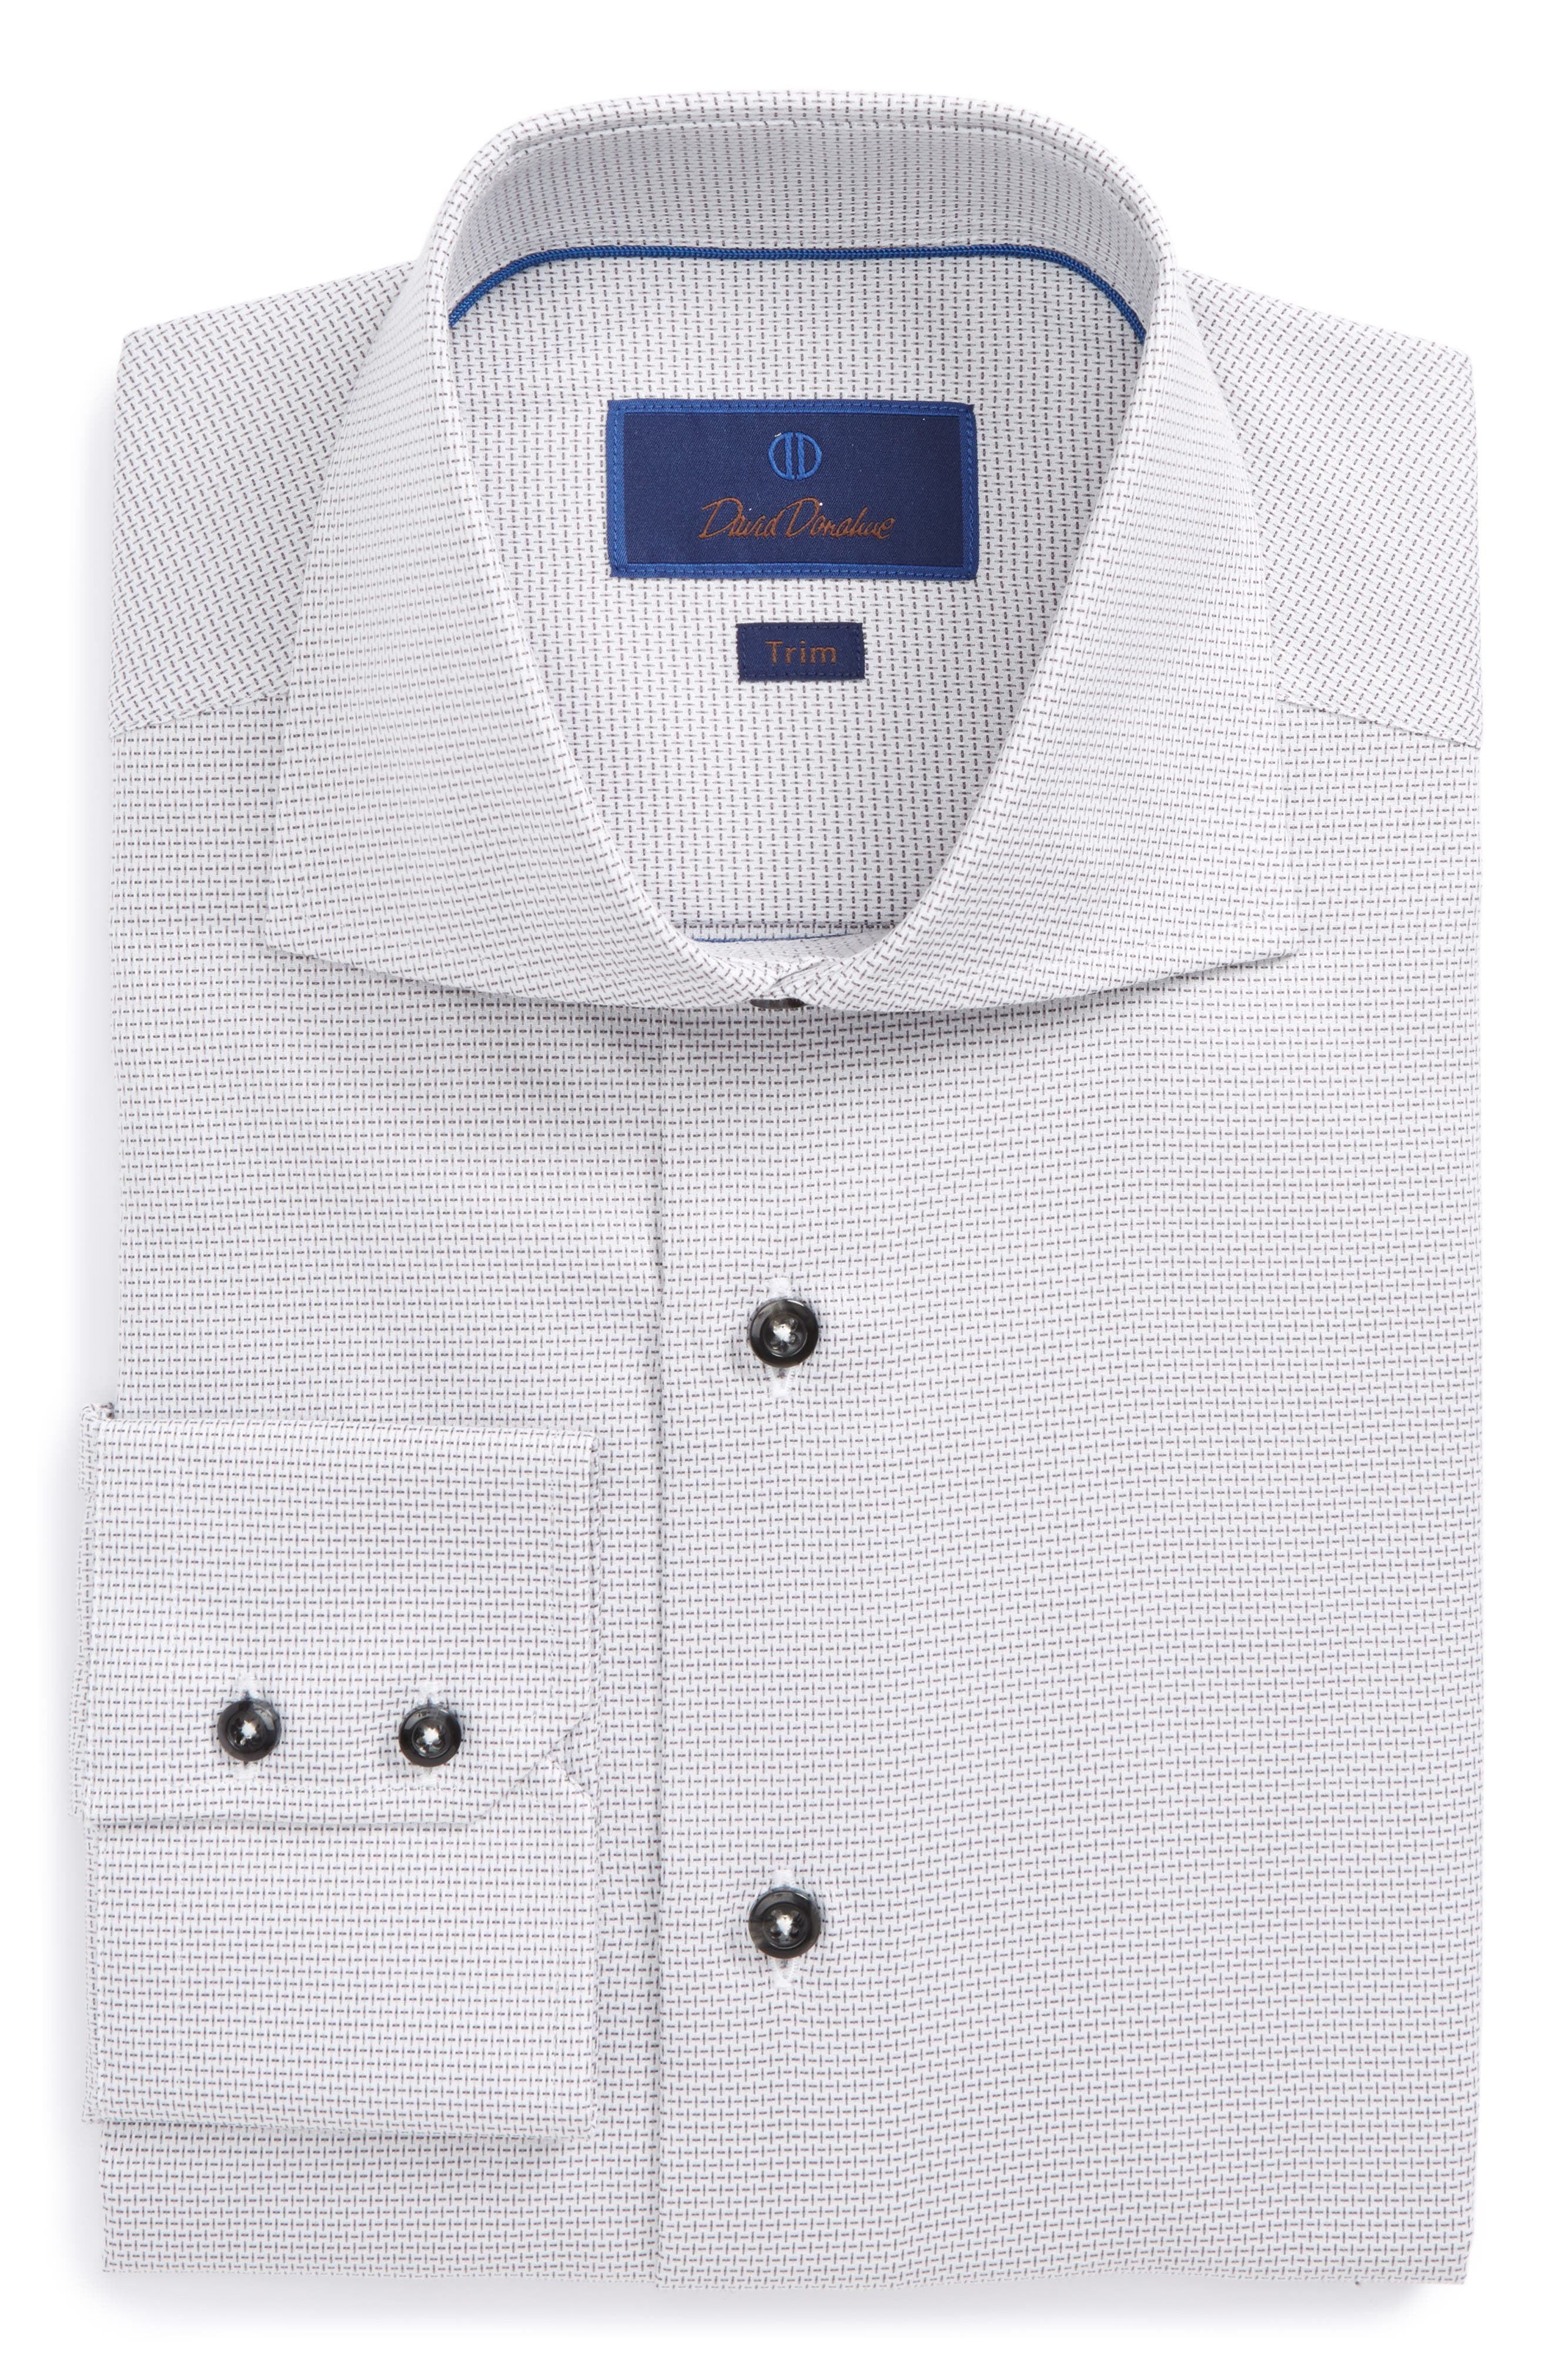 Main Image - David Donahue Trim Fit Patterned Dress Shirt